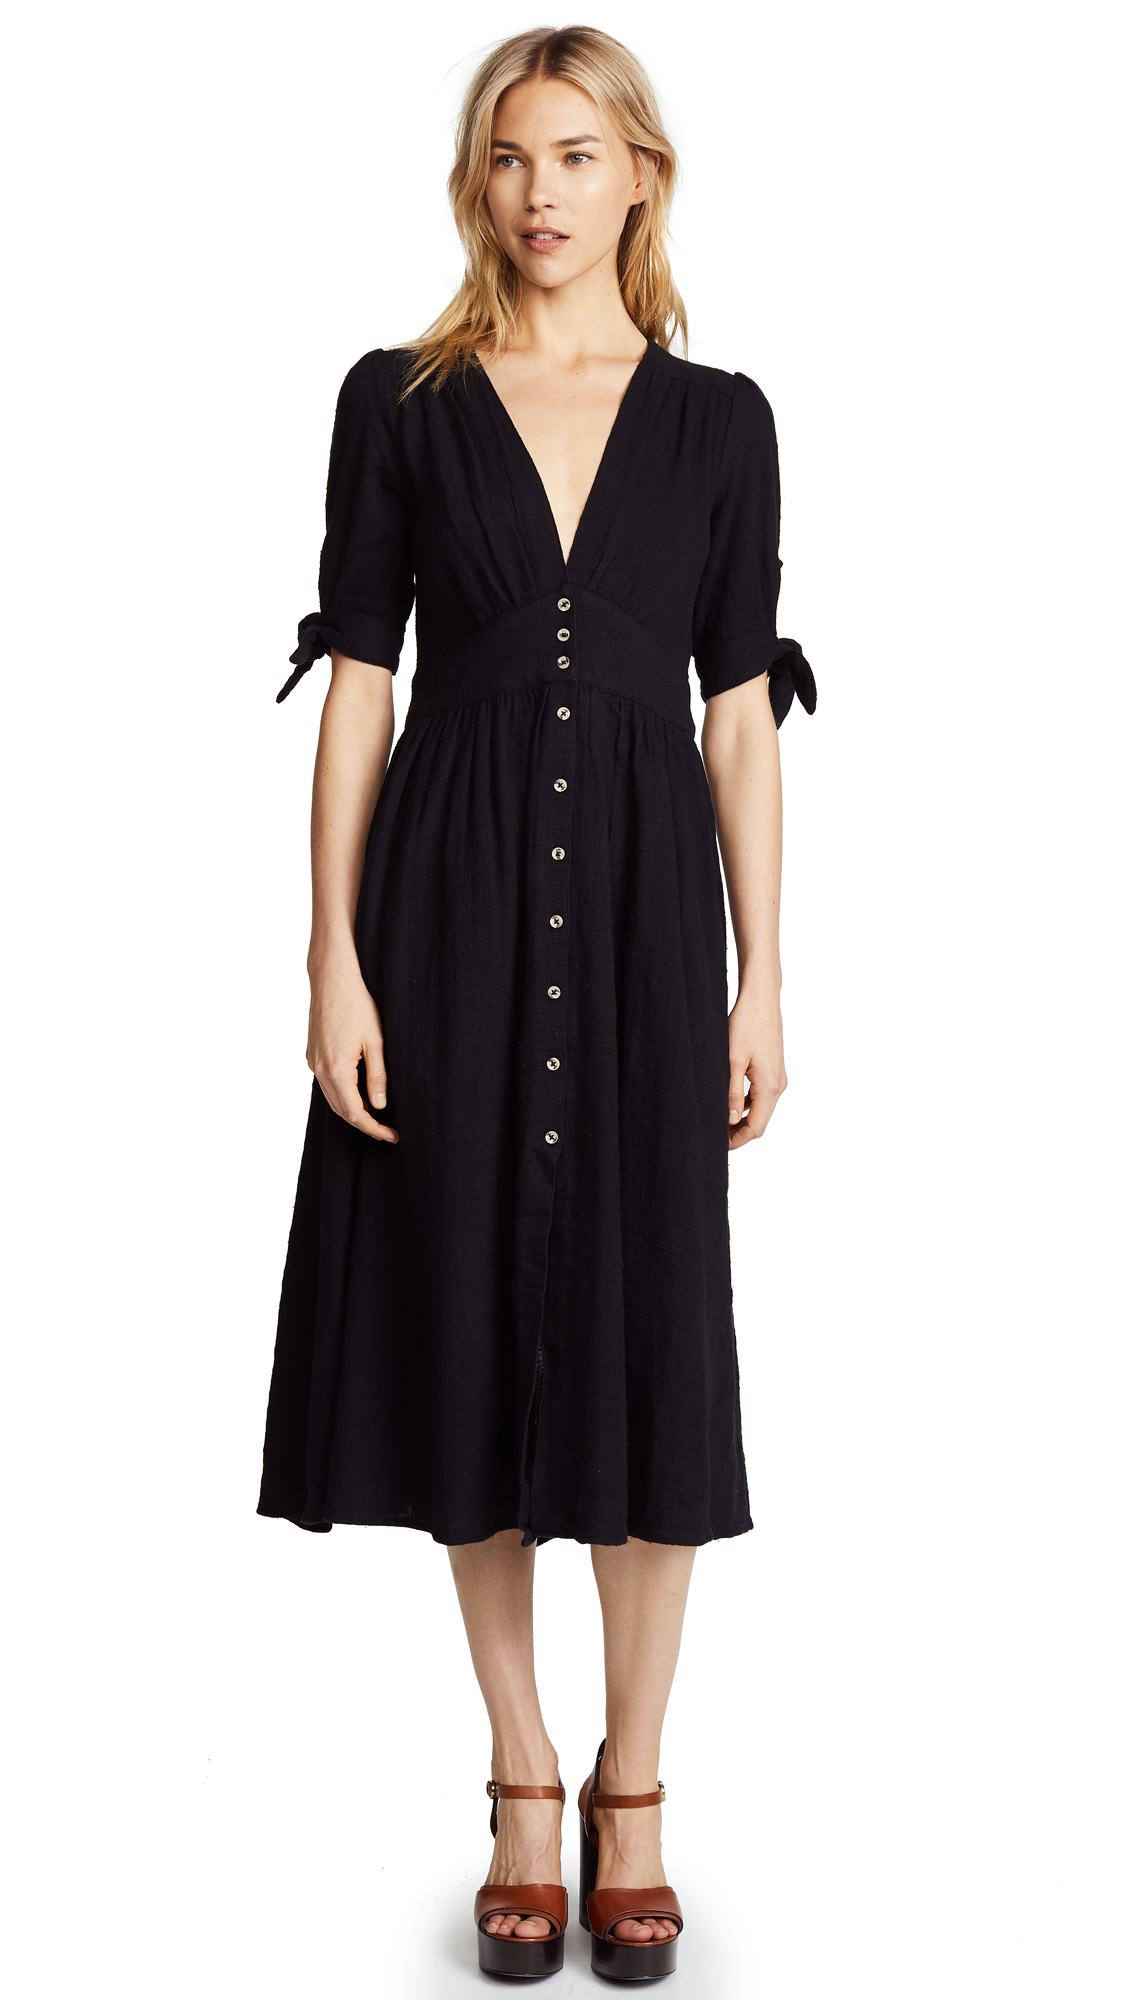 Free People Love Of My Life Dress - Black